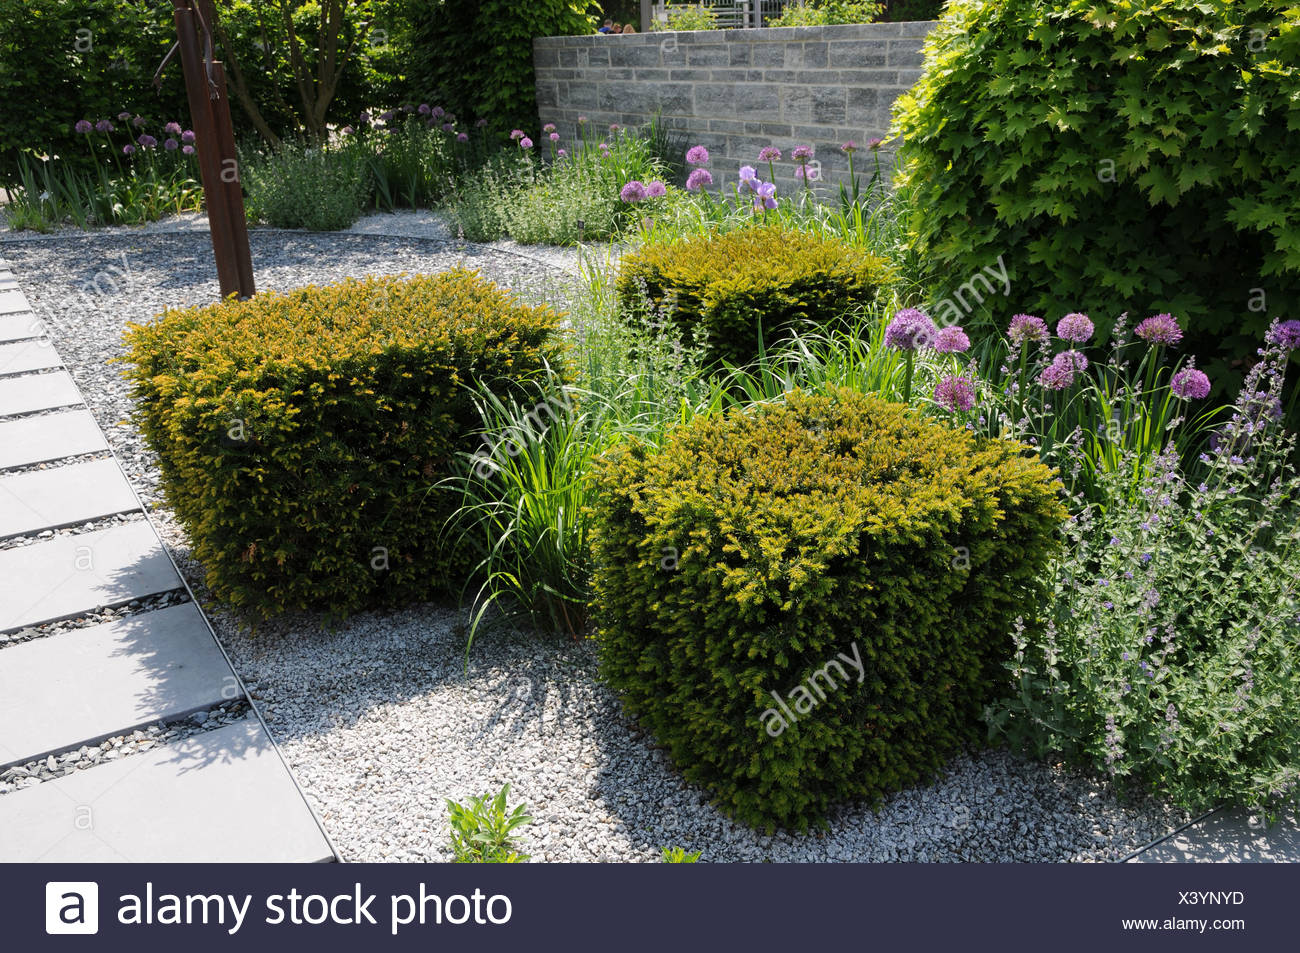 taxus topiary stockfotos taxus topiary bilder alamy. Black Bedroom Furniture Sets. Home Design Ideas